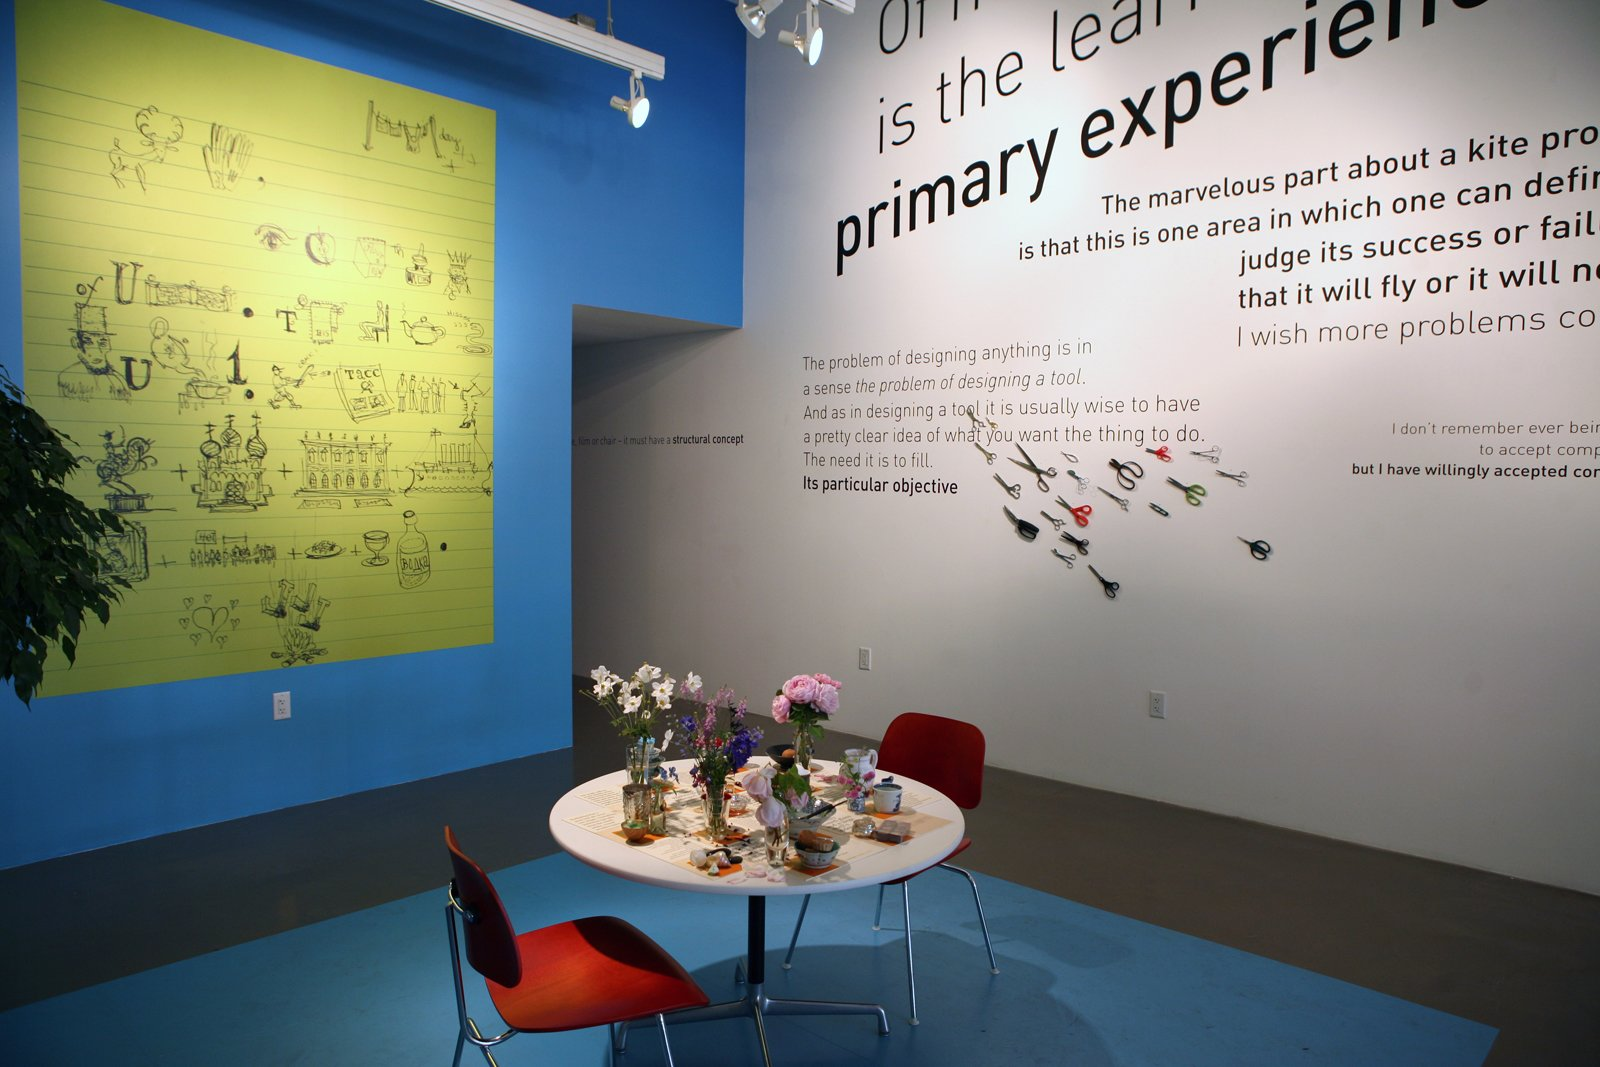 """""""This exhibition is a glimpse into Charles and Ray's daily lives,"""" says Sussman. """"They were changing the world, and the way that is expressed in this exhibit is a part of how they changed the world that is not known to everybody."""" The quotes interact with everyday objects such as scissors, a rebus drawn by Charles and a re-creation of Ray's table, flanked by new Eames LCM chairs. """"There's no vintage furniture in the exhibition,"""" notes Demetrios. """"Charles and Ray were continually designing for tomorrow.""""  Search """"game changing ideas sustainable world """" from Eames Words"""